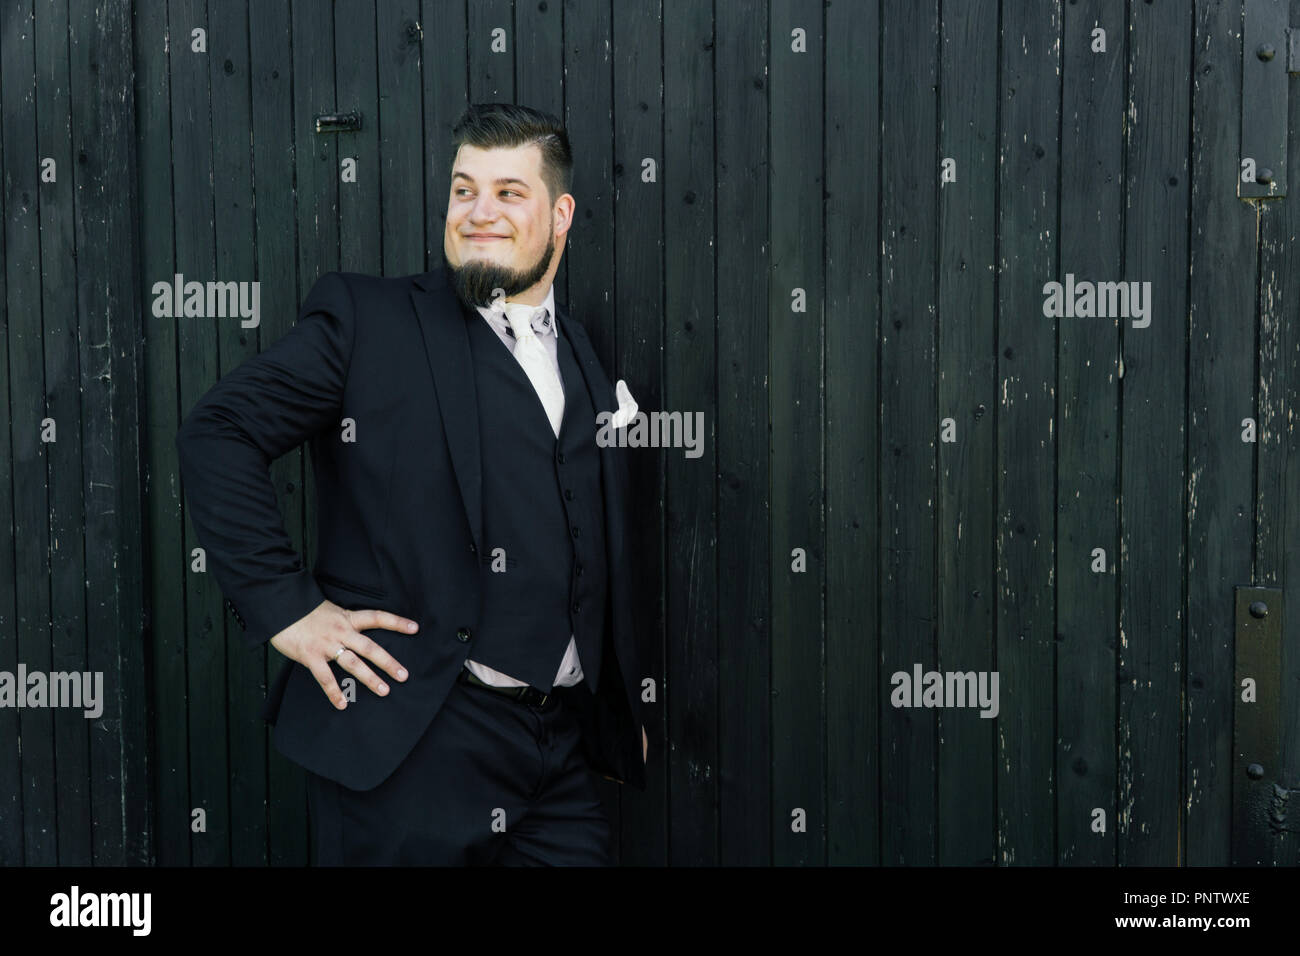 Bridegroom is standing in front of a wooden wall - Stock Image